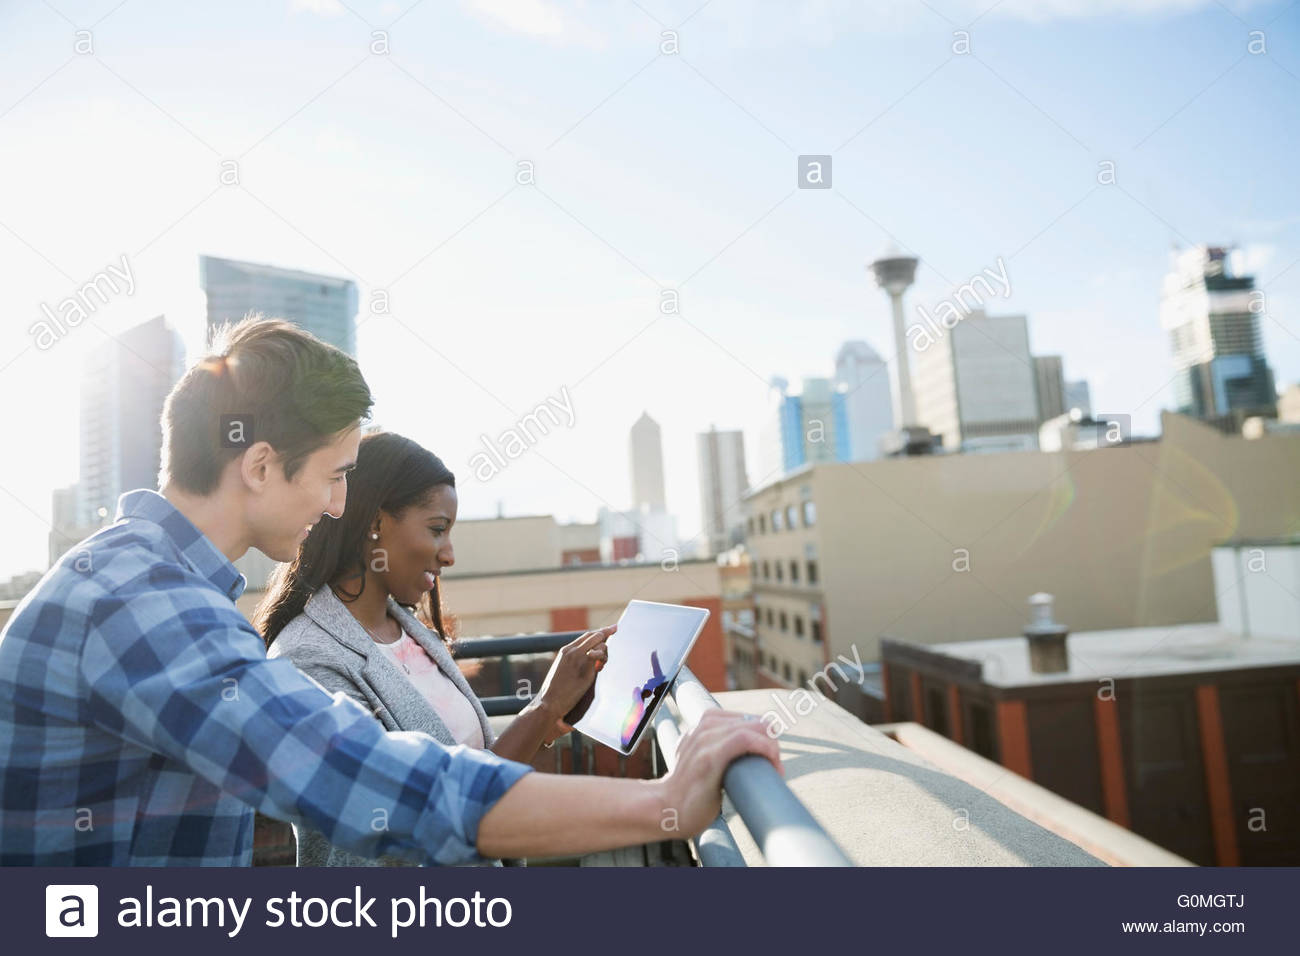 Businessman and businesswoman using digital tablet urban rooftop Photo Stock